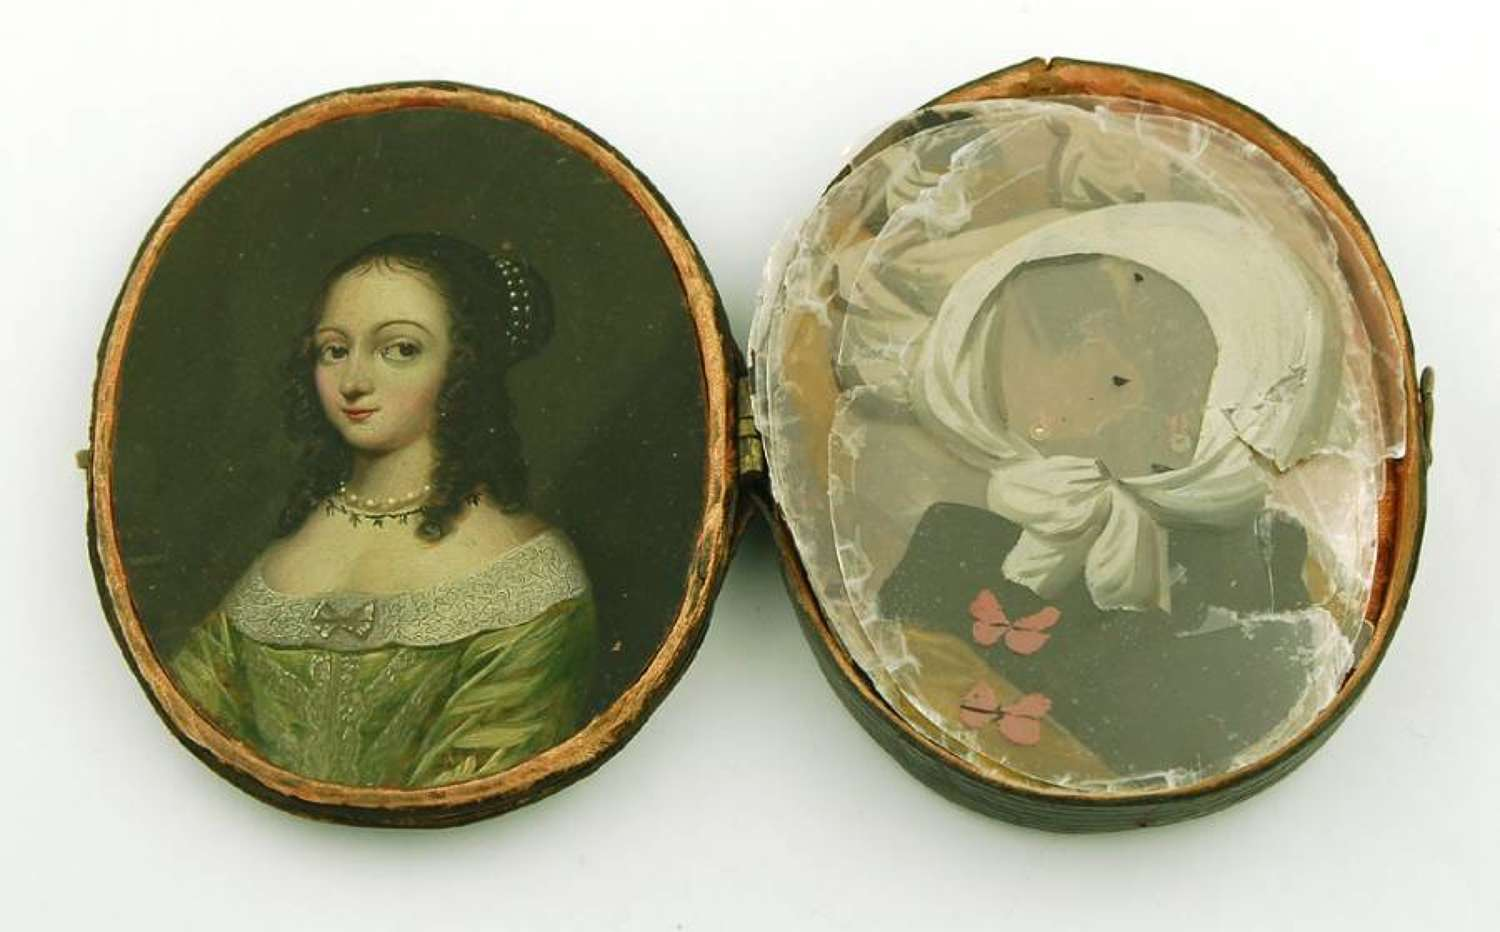 17th Century miniature with micas